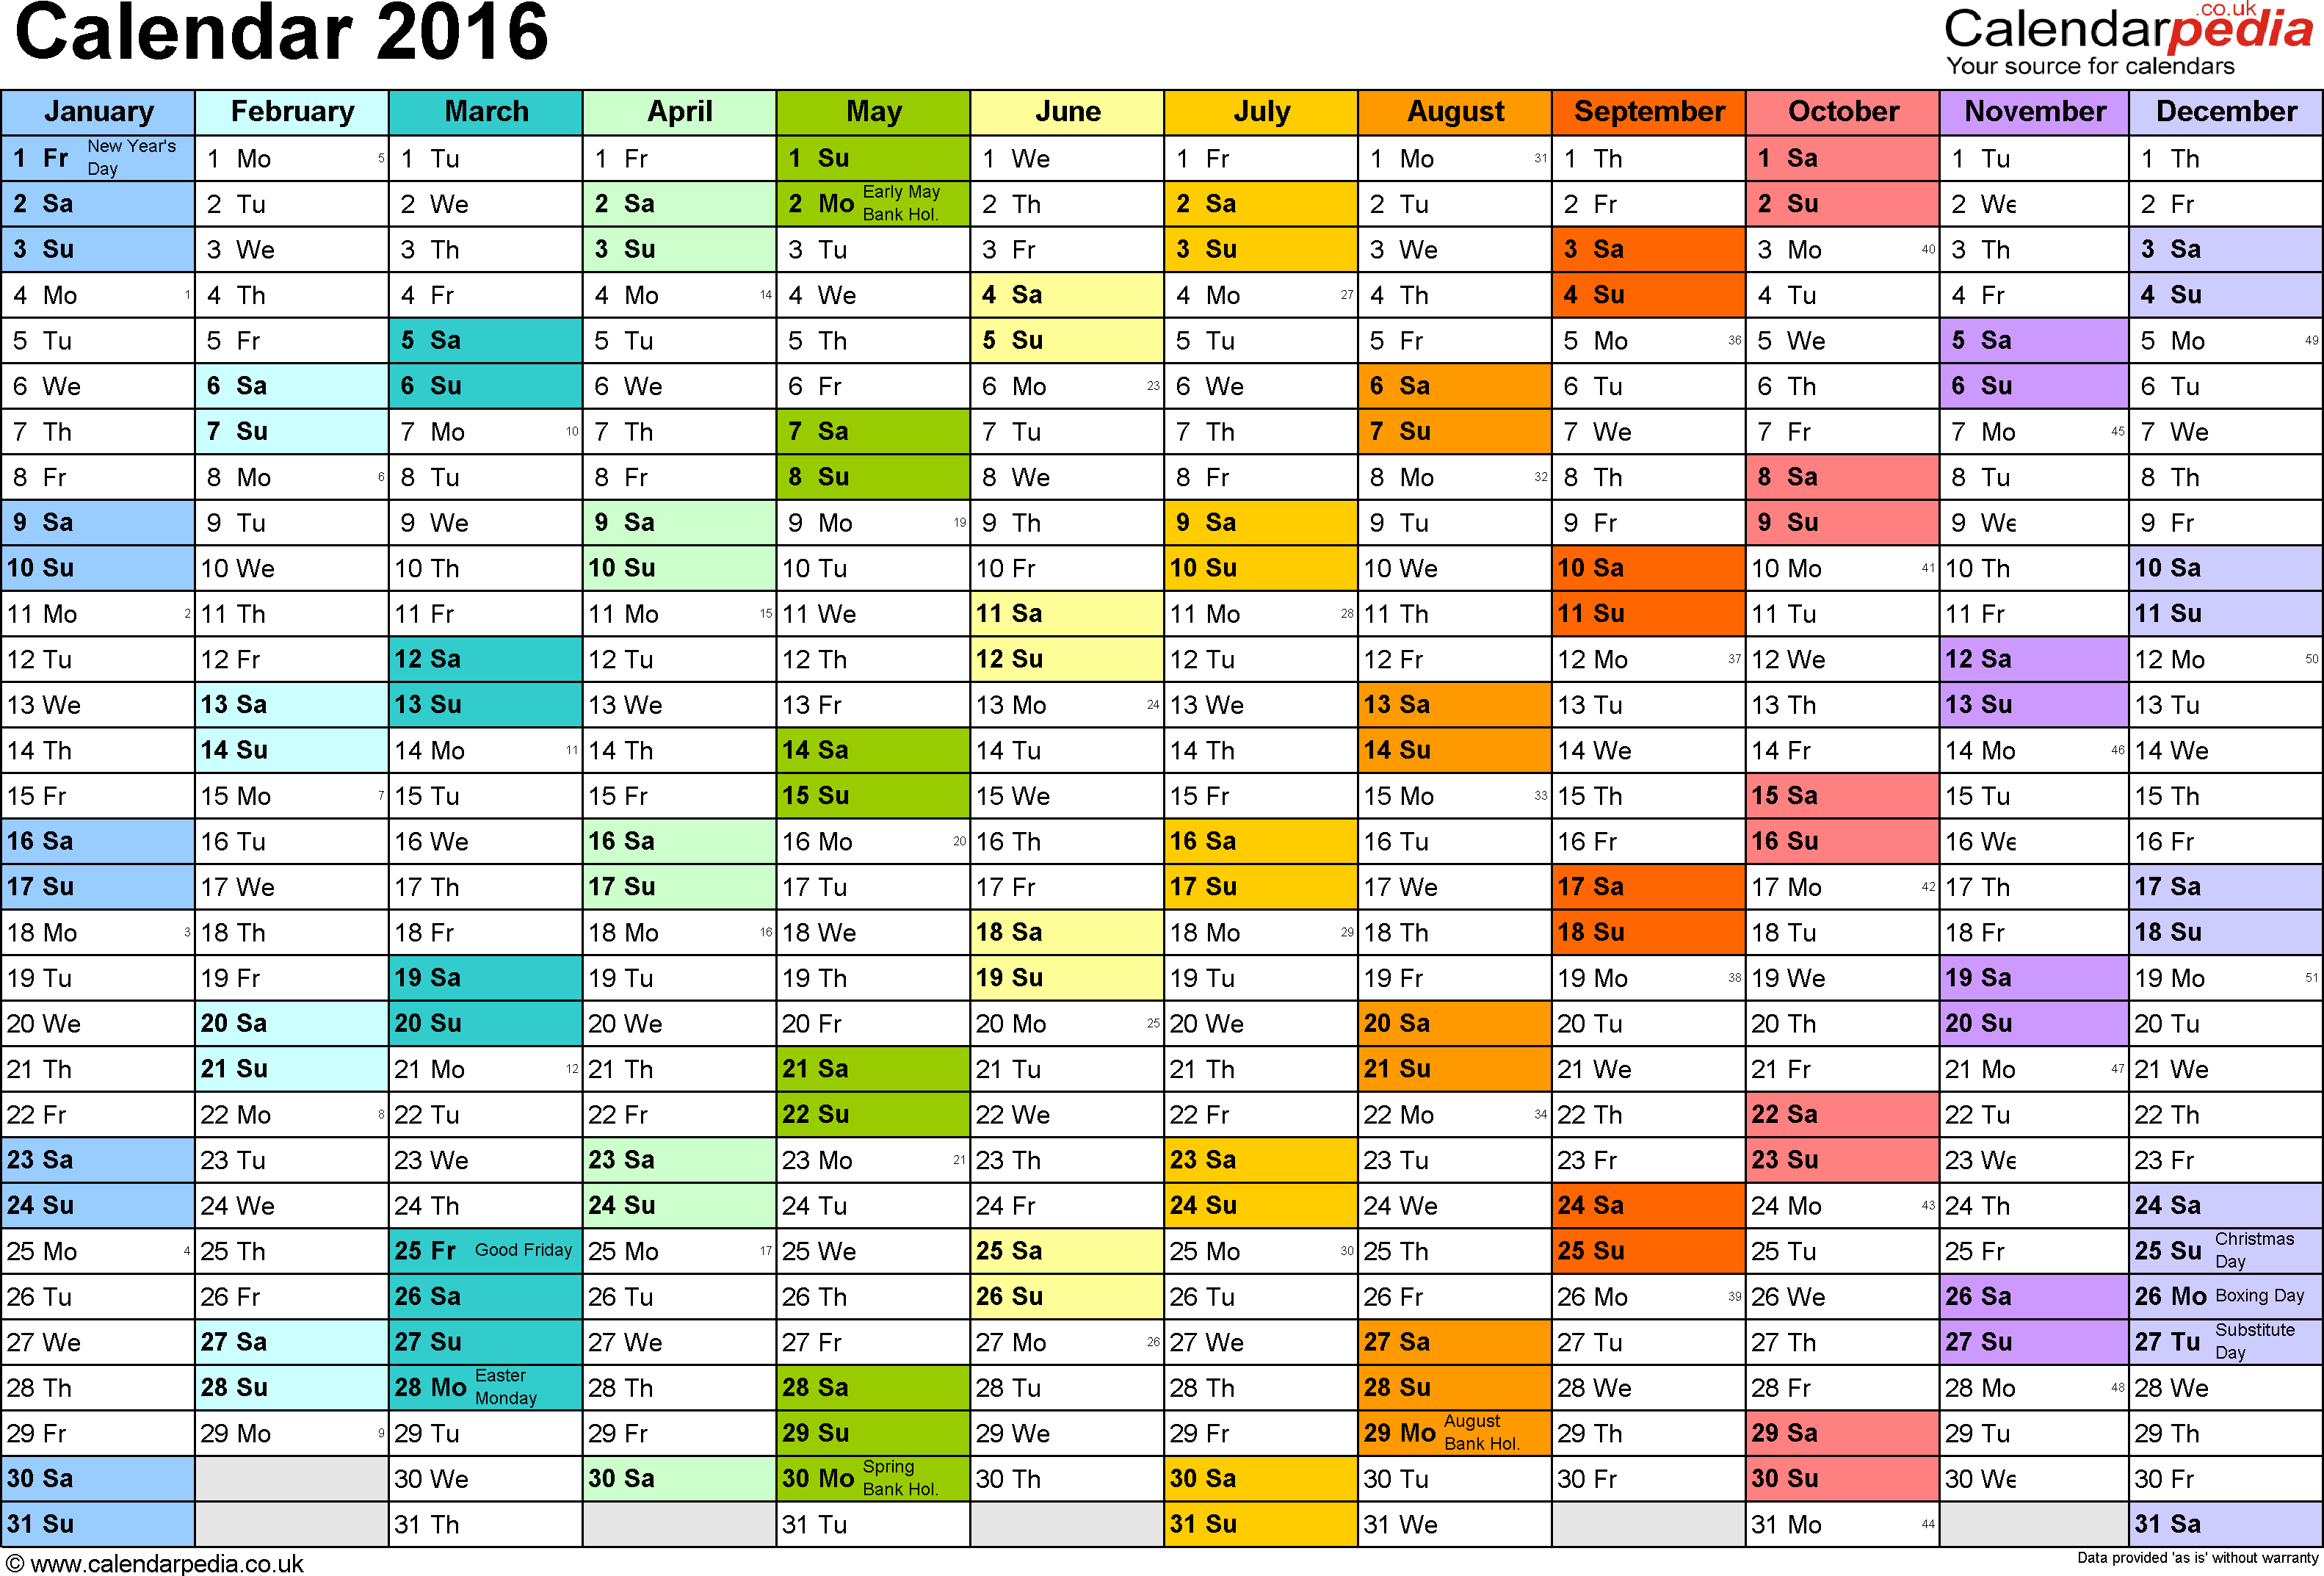 Template 1: Yearly calendar 2016 as Excel template, landscape orientation, A4, 1 page, months horizontally, days vertically, in colour, with UK bank holidays and week numbers